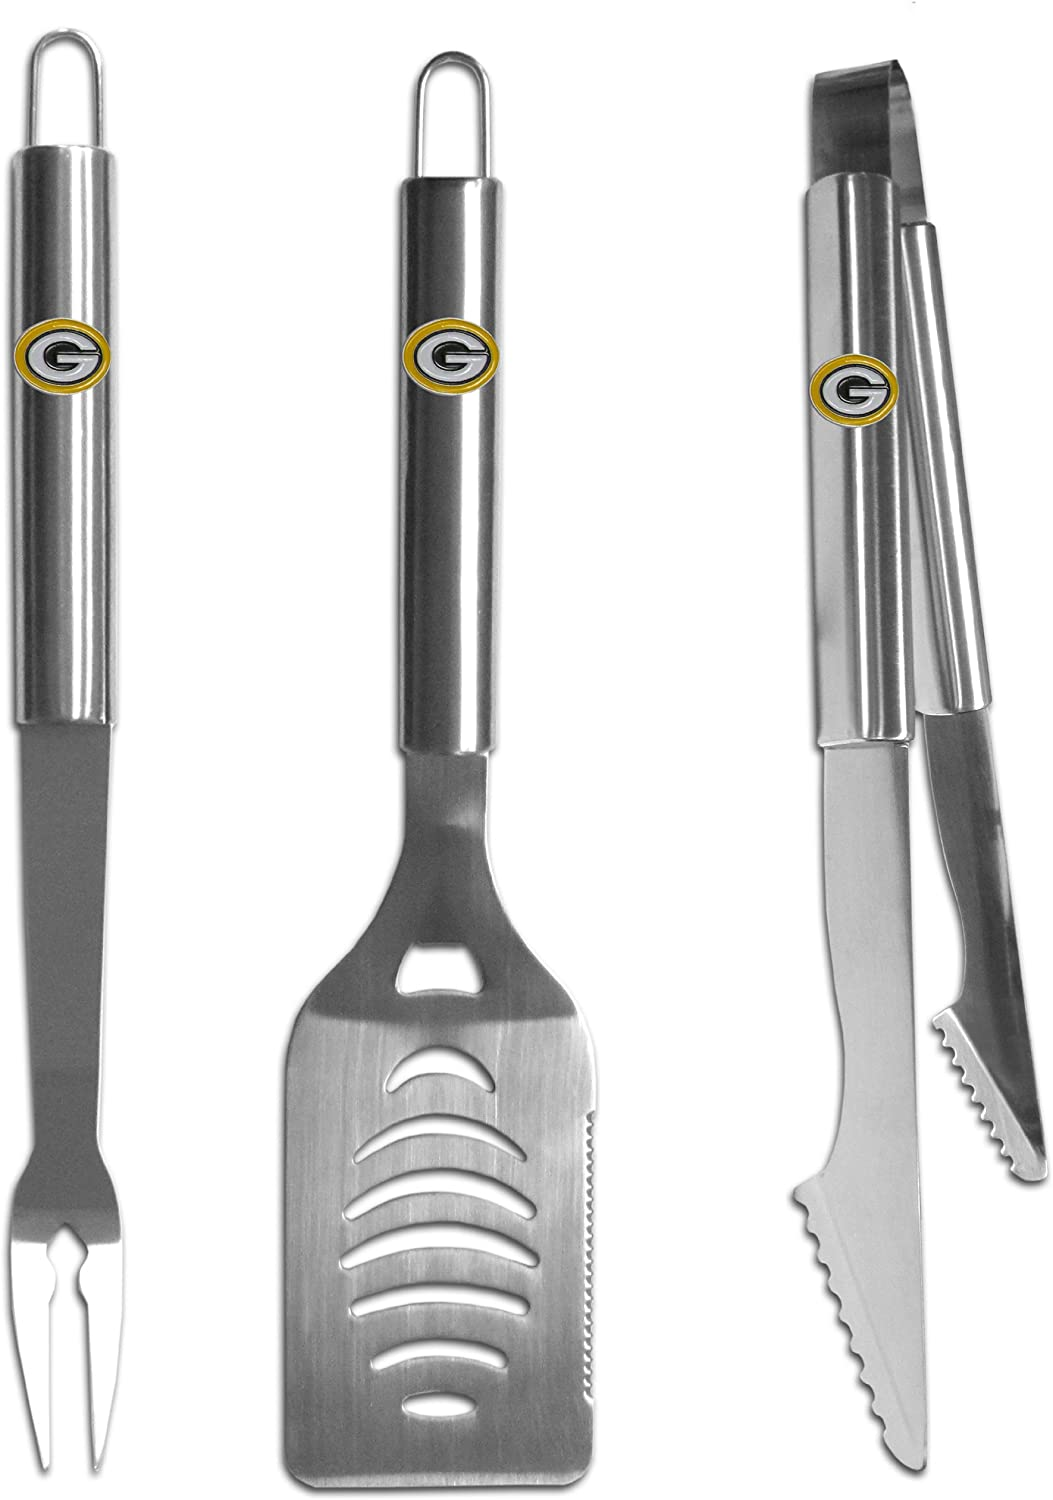 Siskiyou Gifts Co, Inc. NFL Stainless Steel BBQ Set